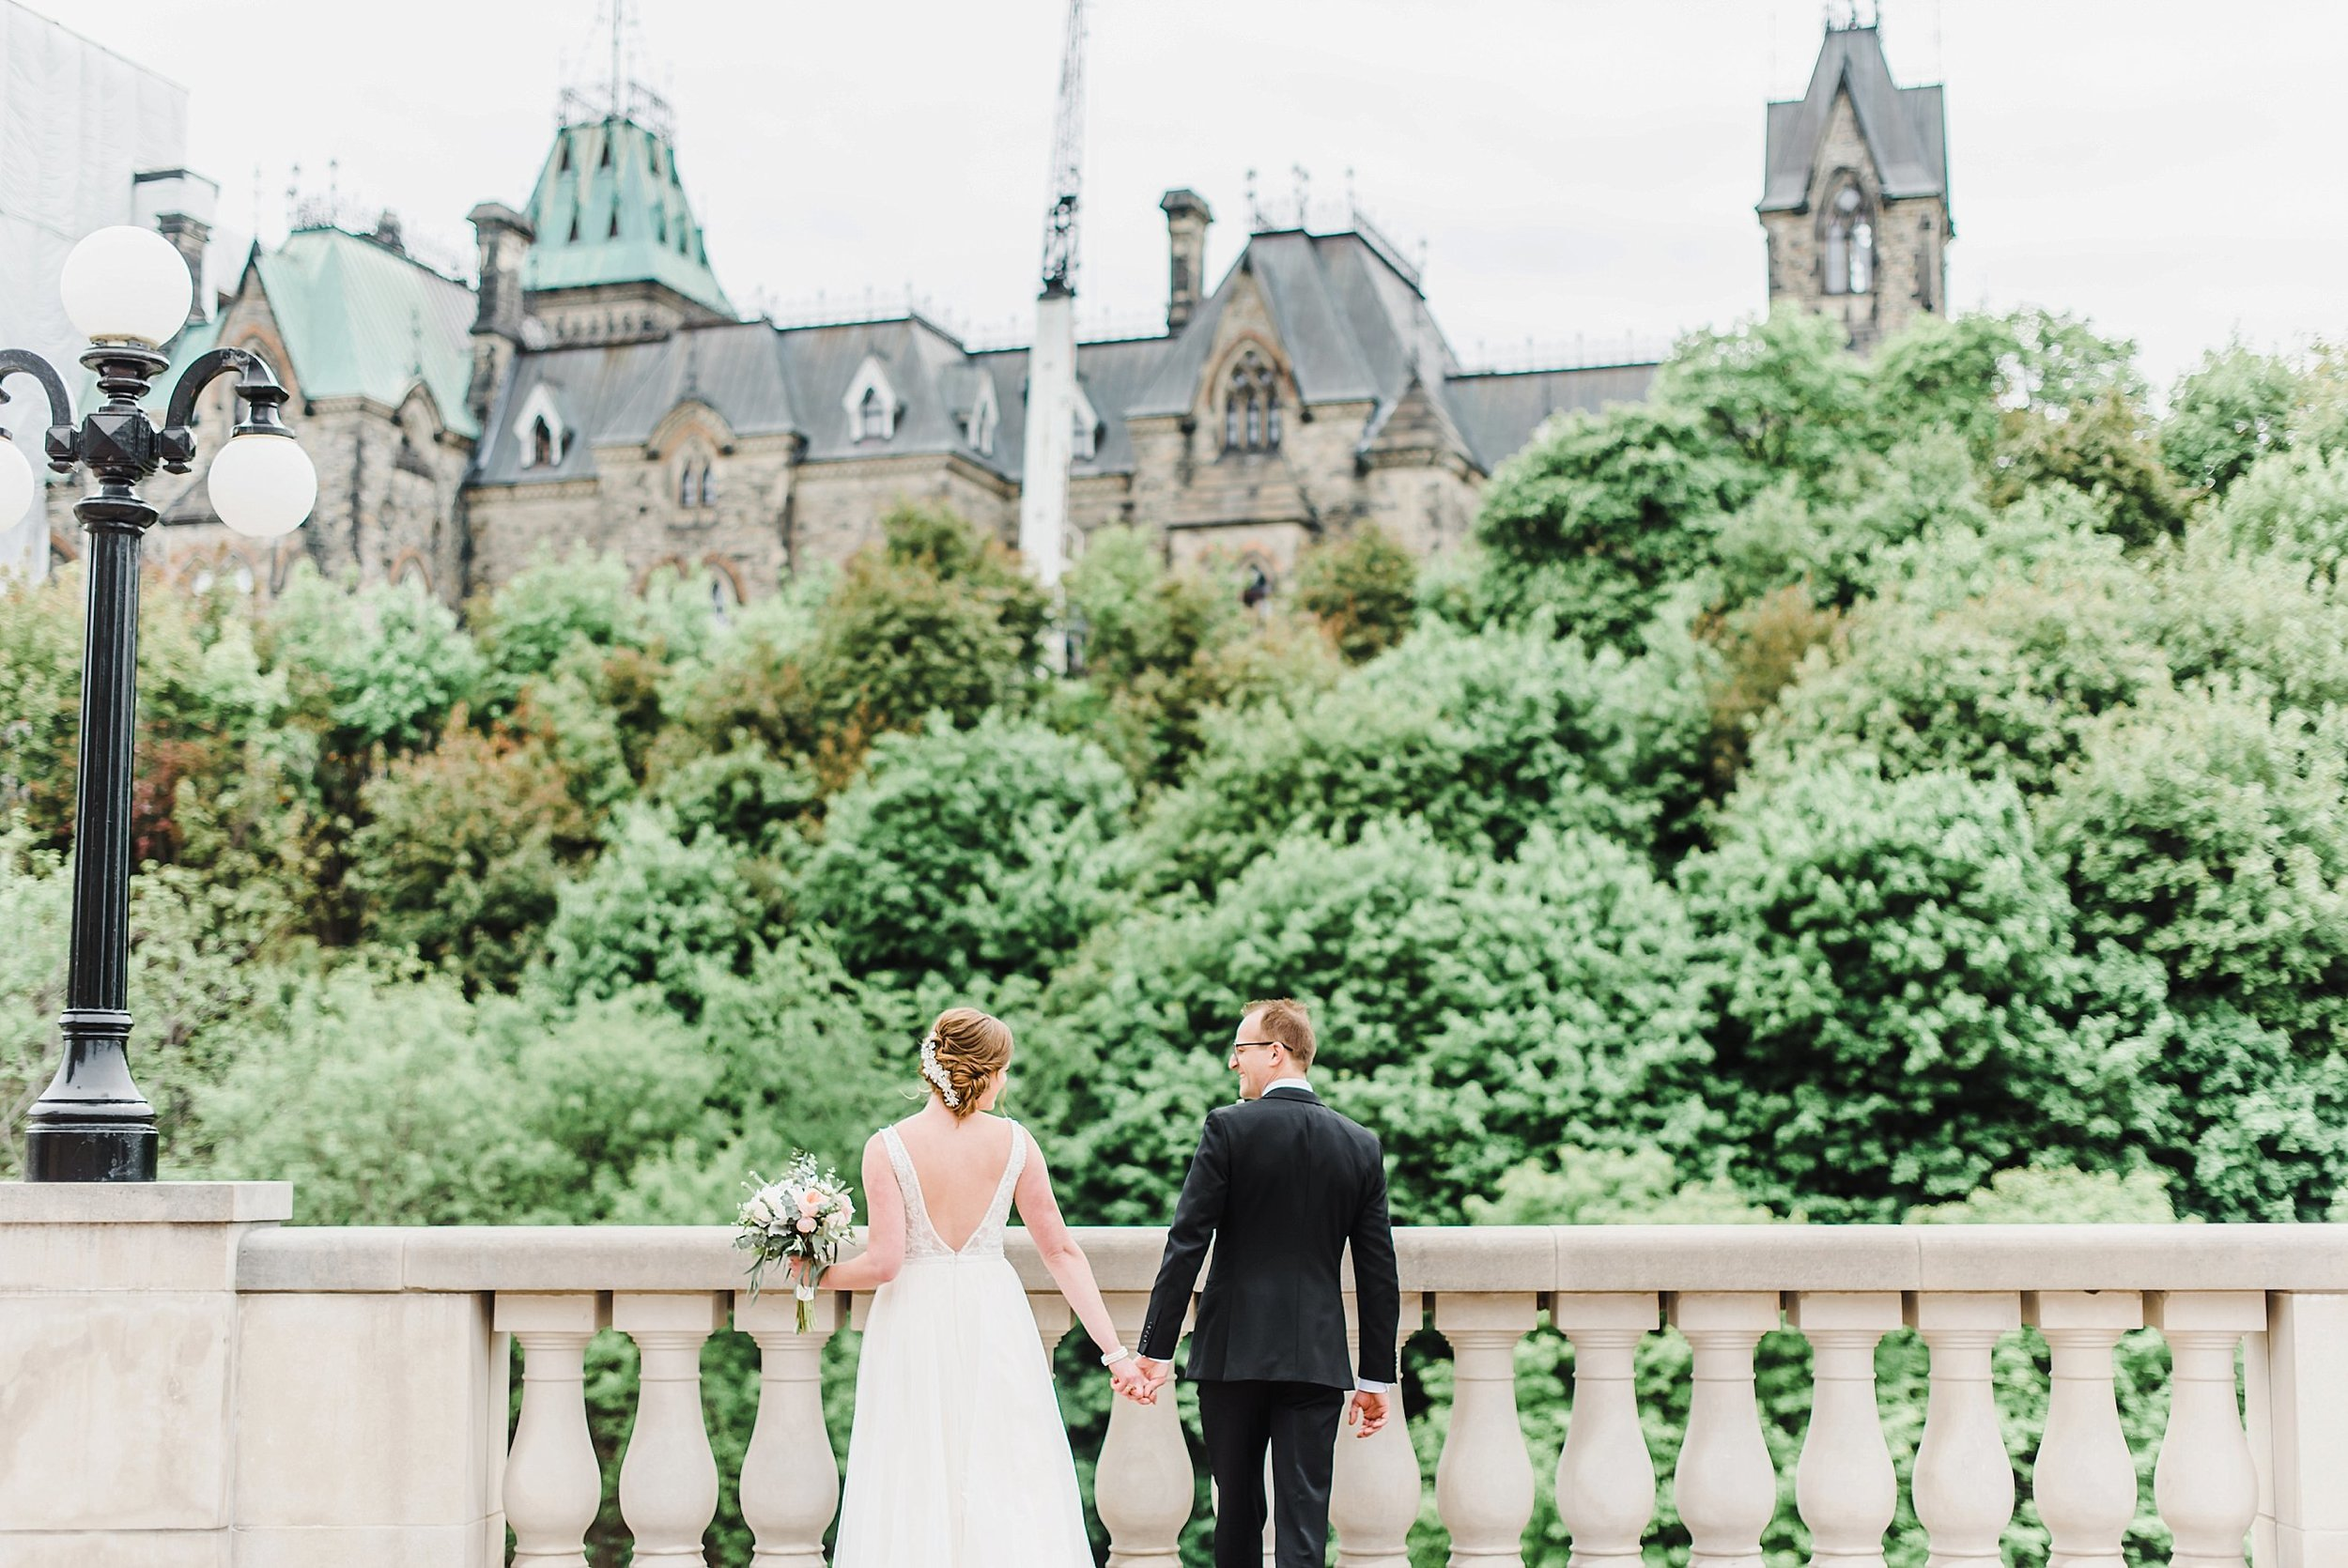 light airy indie fine art ottawa wedding photographer | Ali and Batoul Photography_0342.jpg